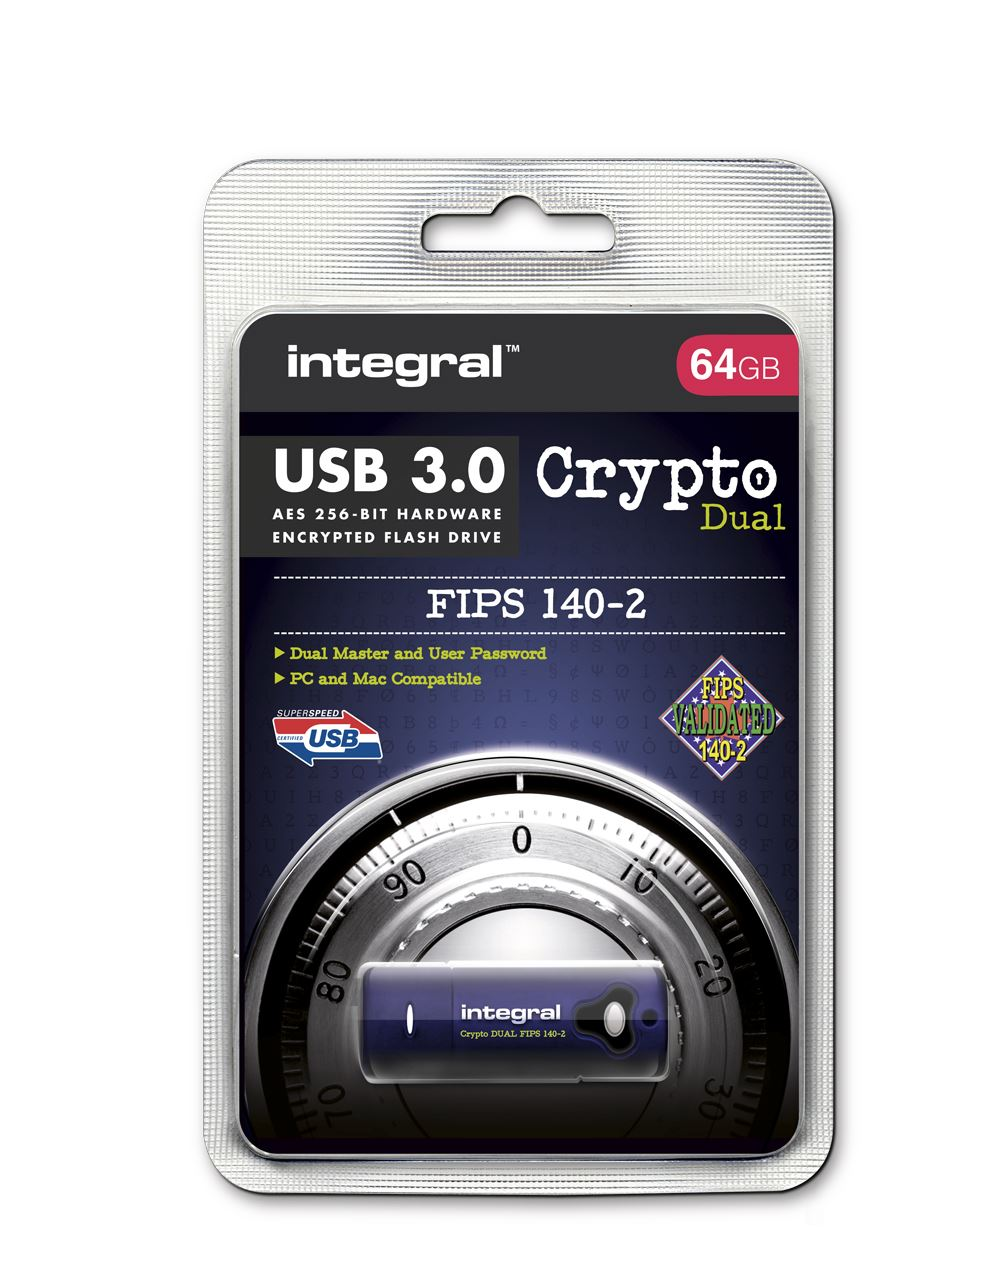 Integral-Crypto-Dual-Contrasenas-encriptado-FIPS-140-2-memoria-flash-USB-3-0